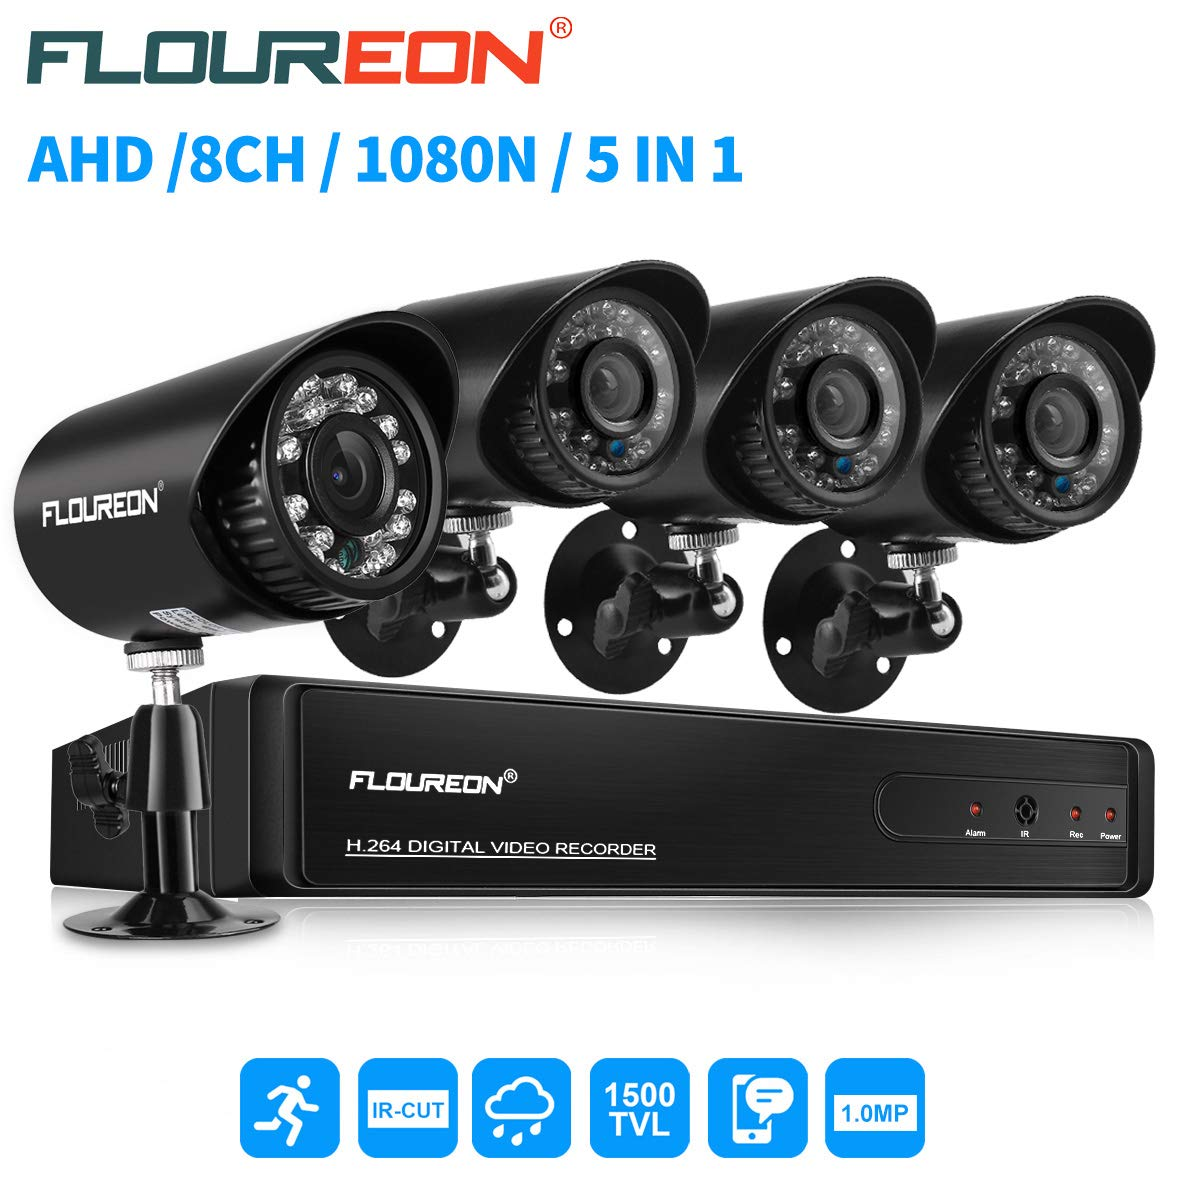 floureon 8 CH House Camera System DVR 1080N AHD + 4 Outdoor/Indoor Bullet Home Security Cameras 1500TVL 720P 1.0MP AHD Resolution Night Version for House/Apartment/Office by floureon